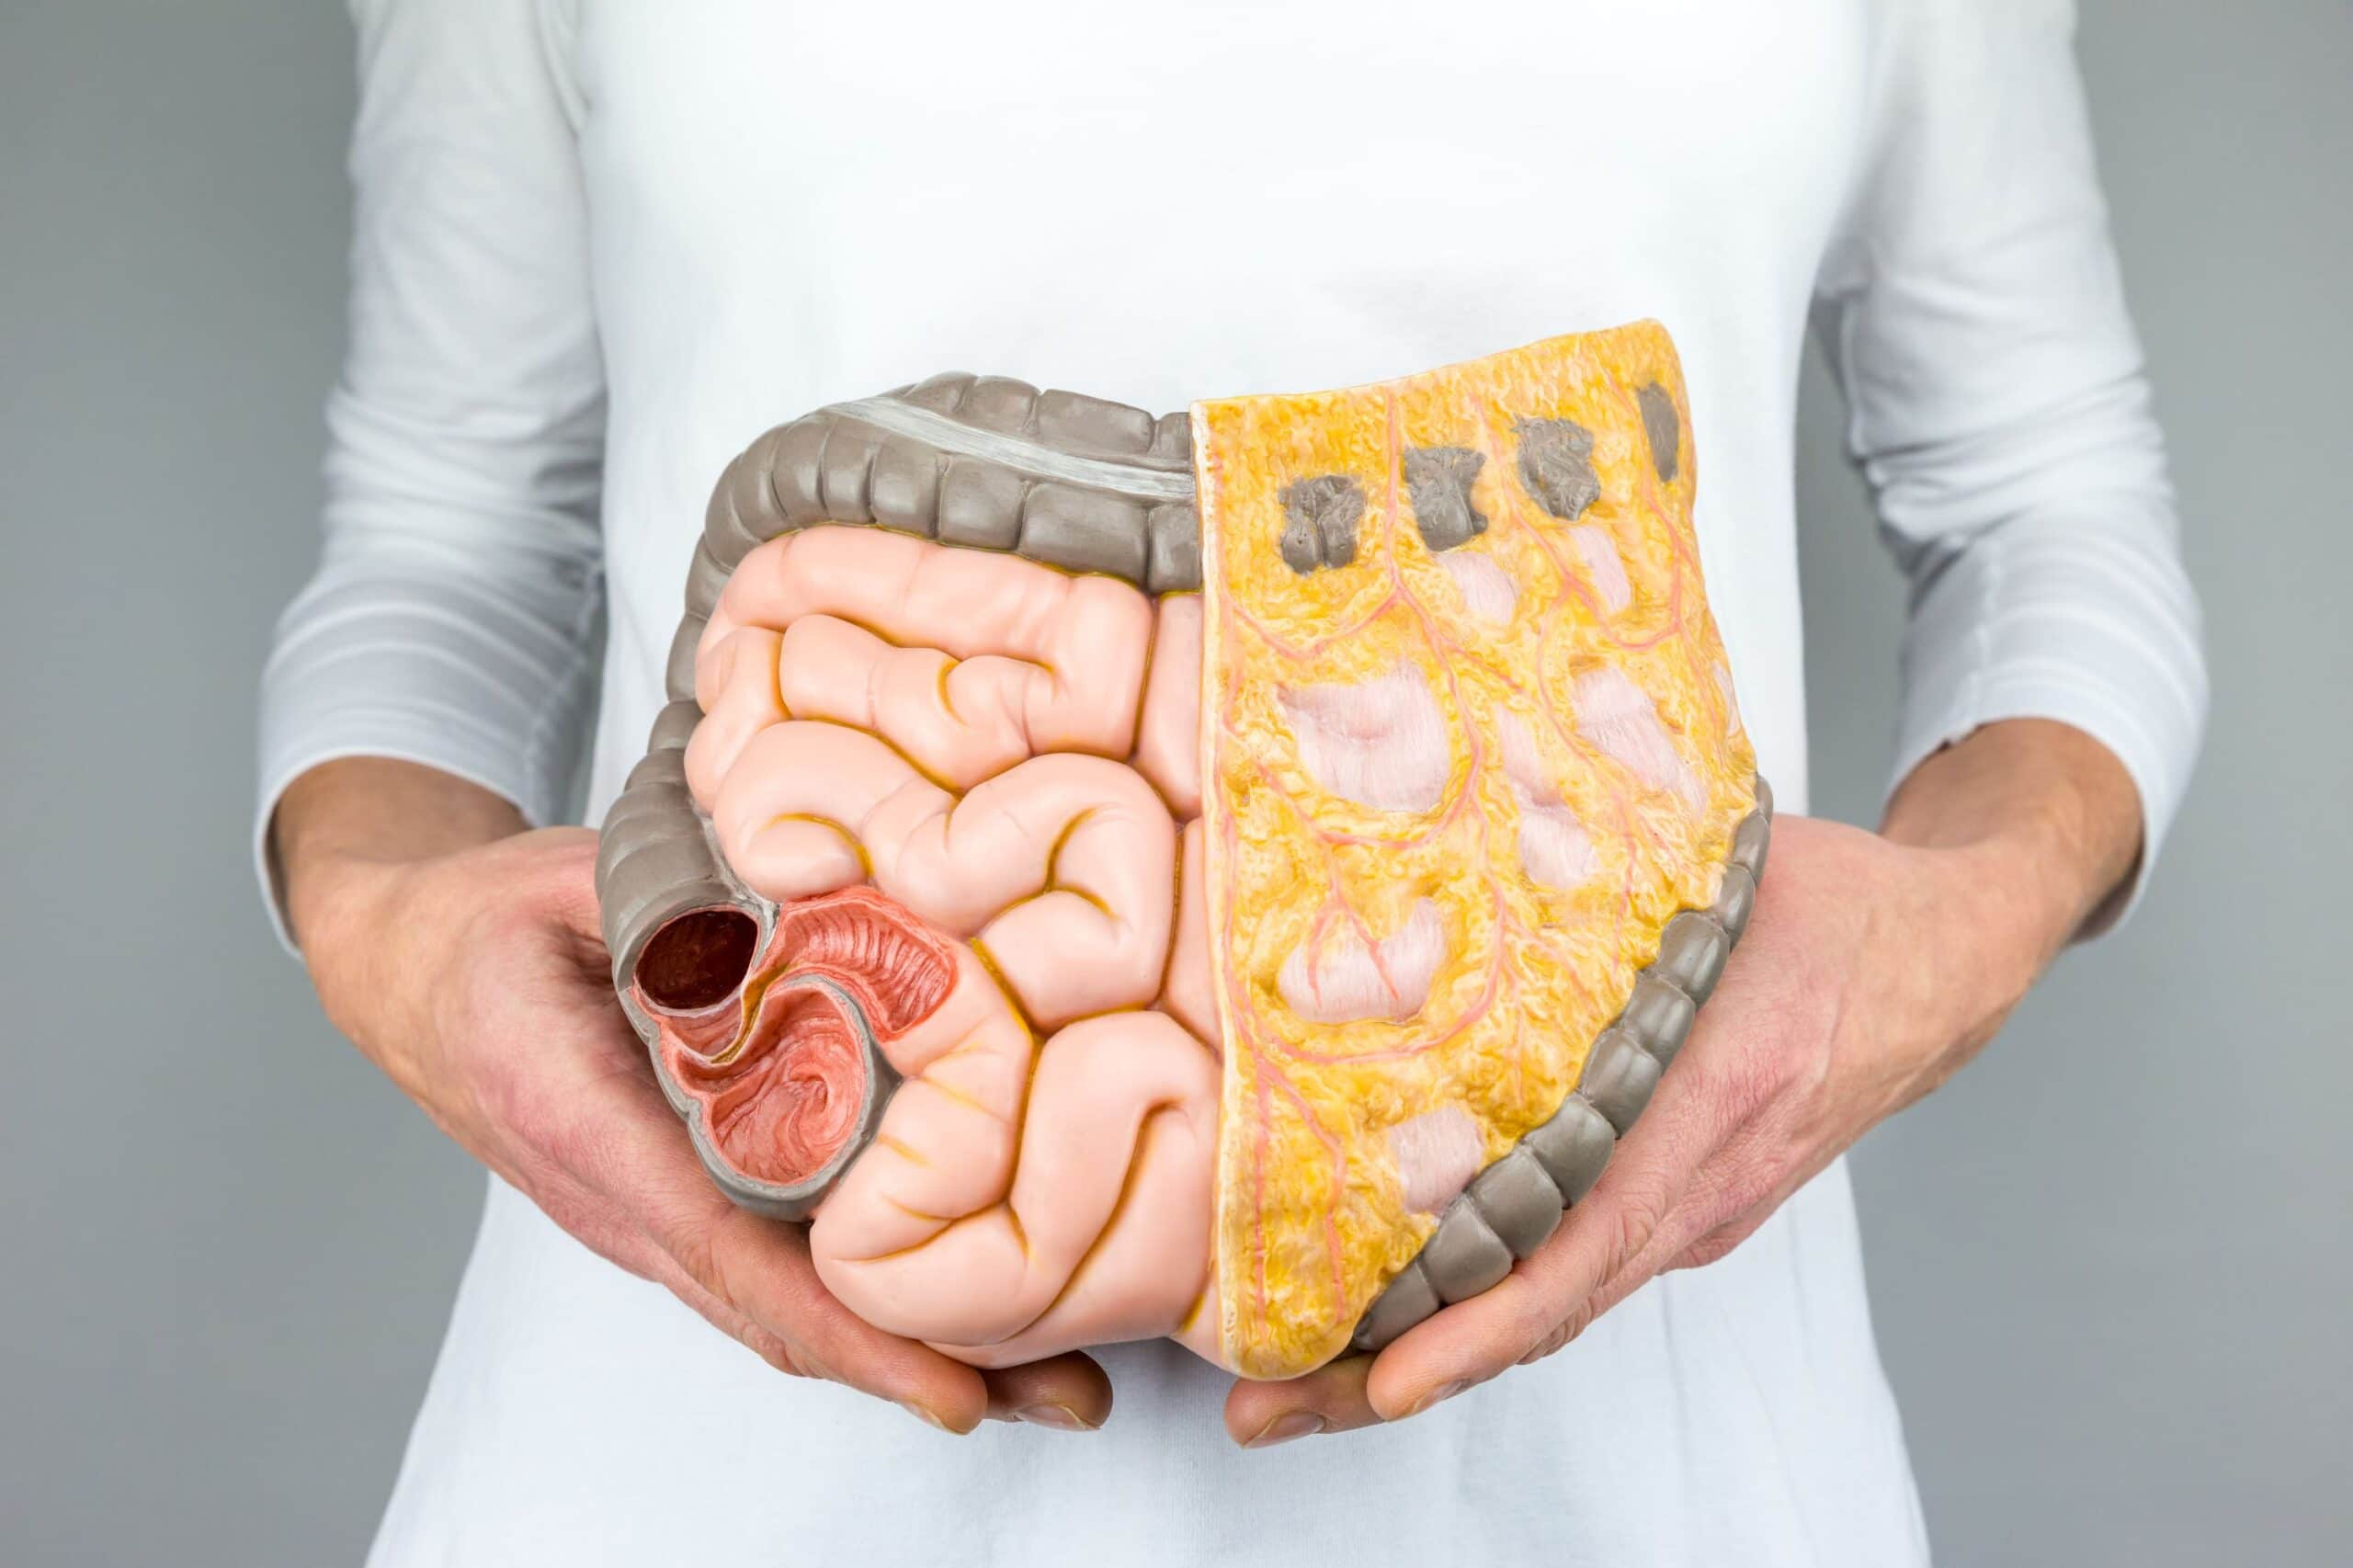 Myths About Your Gut